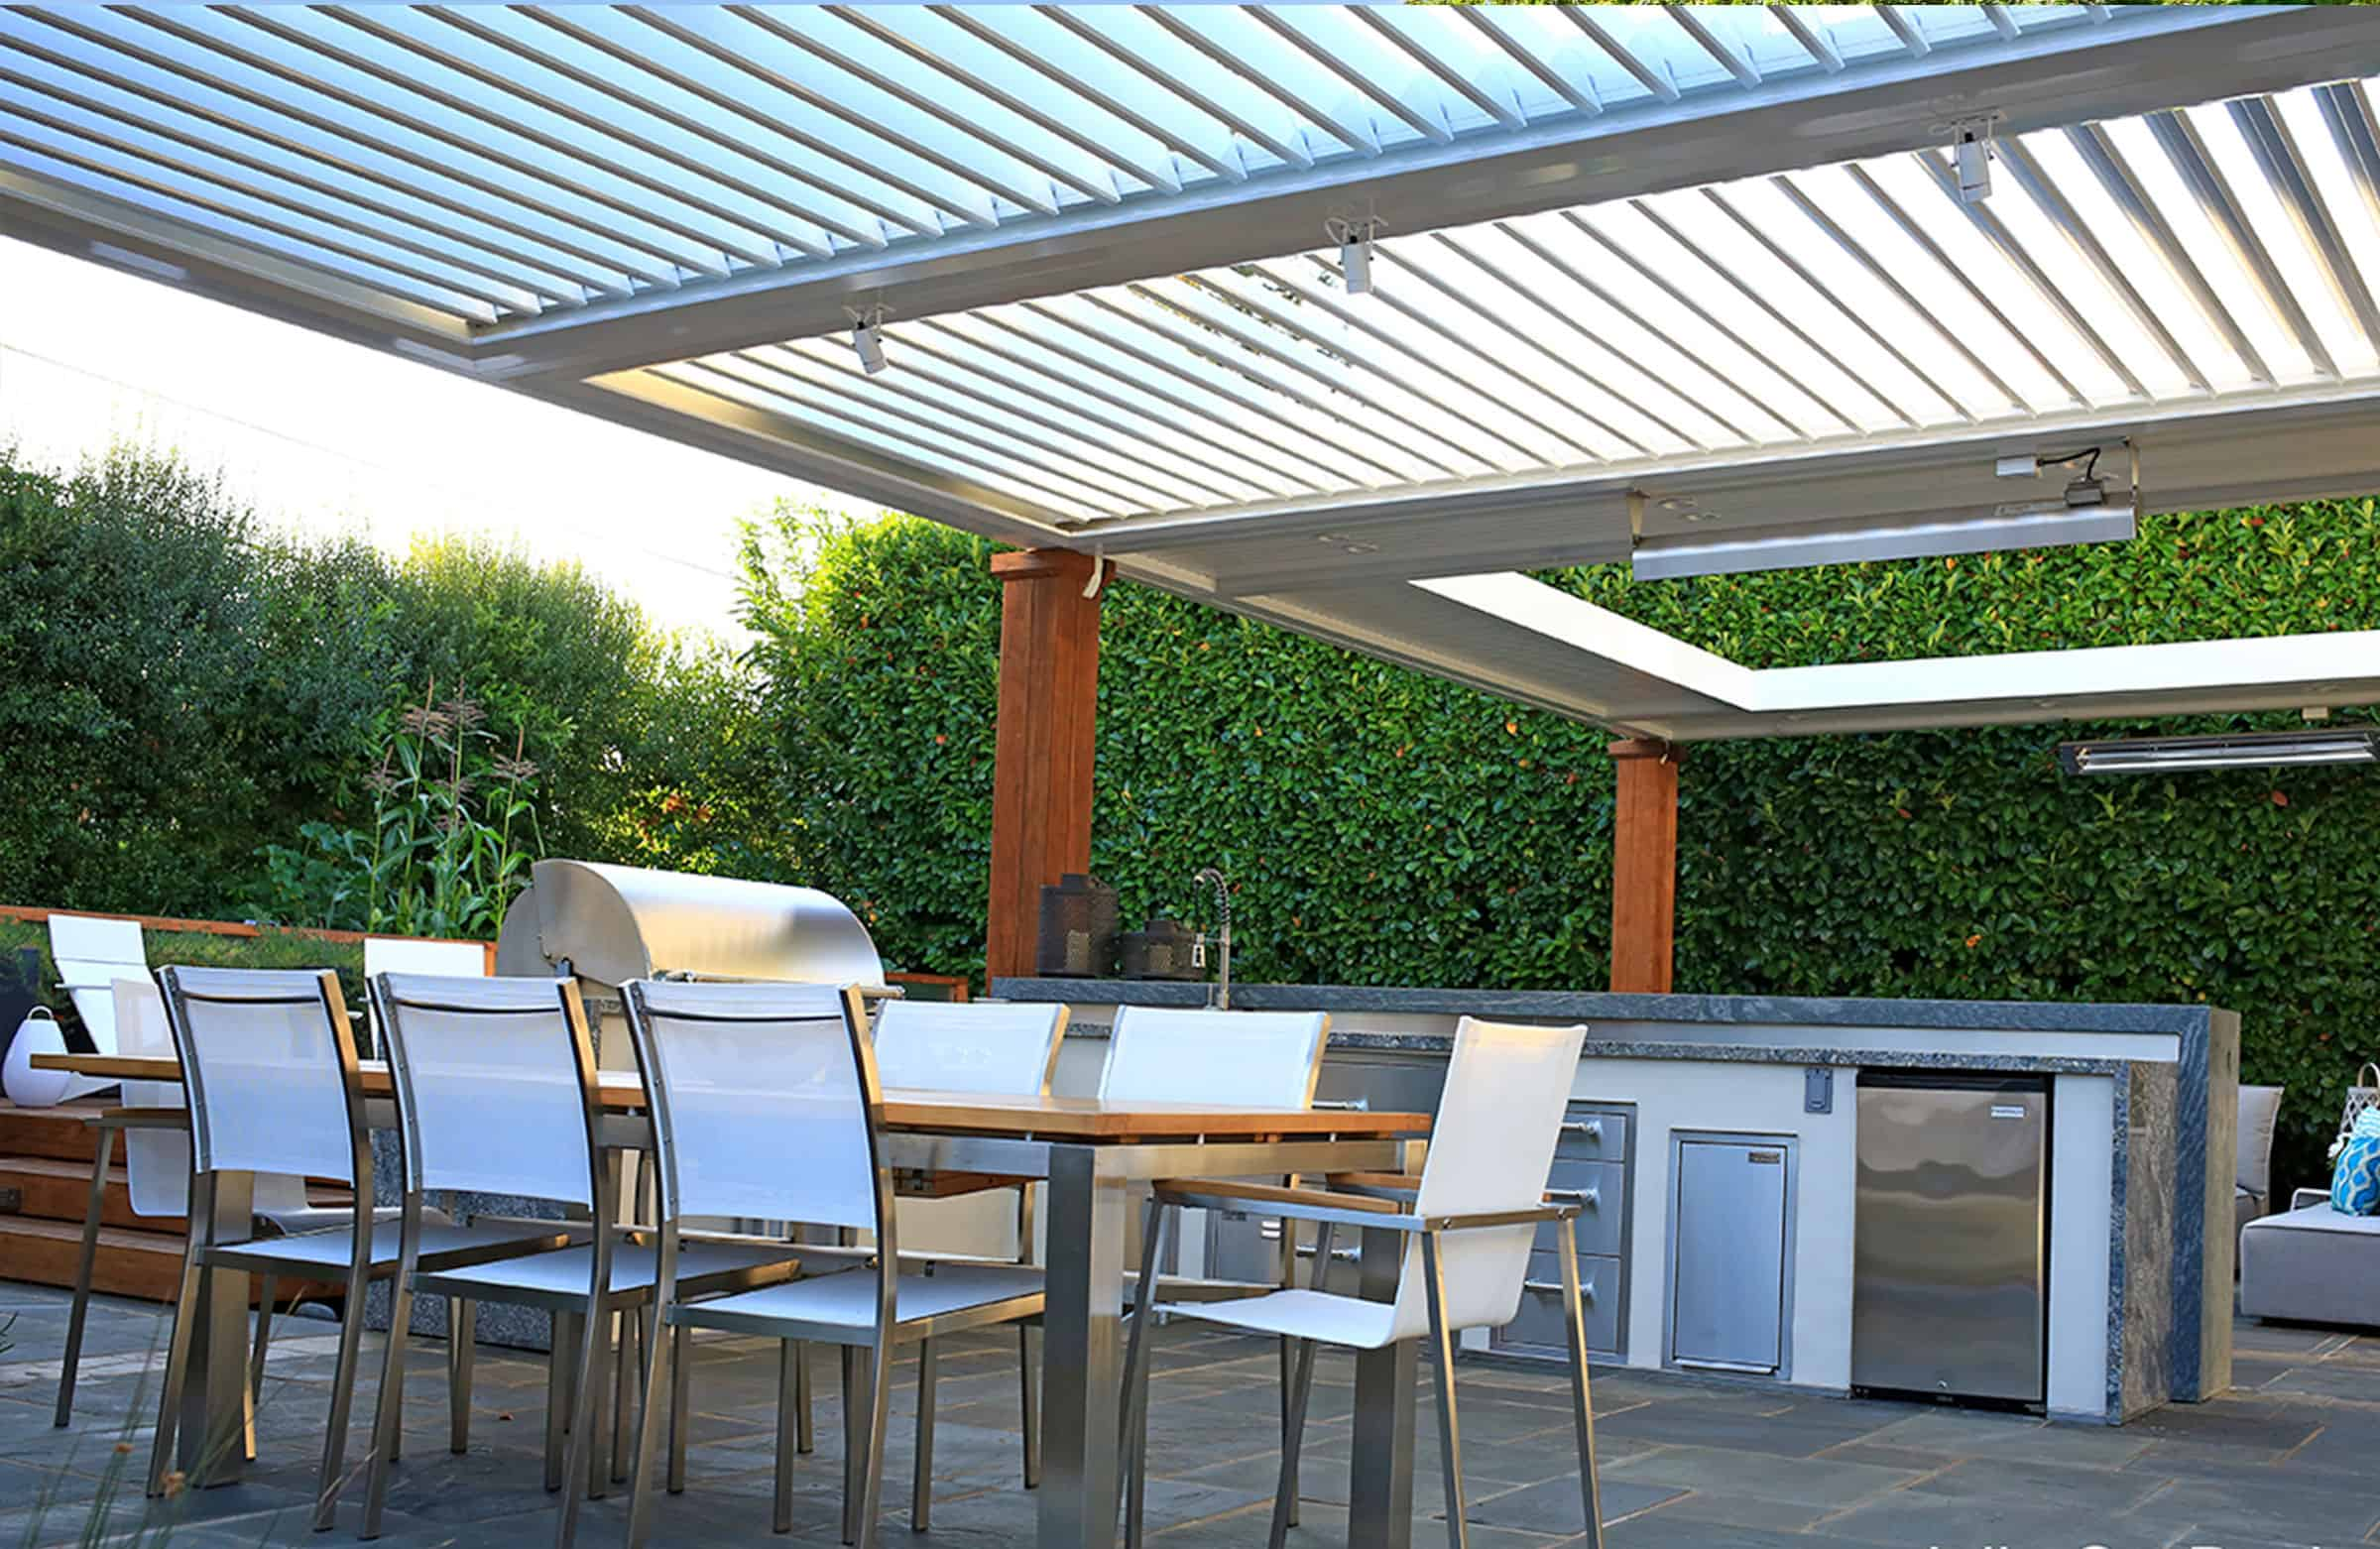 Pergolas by Julie - Louvered Pergola with Outdoor Kitchen